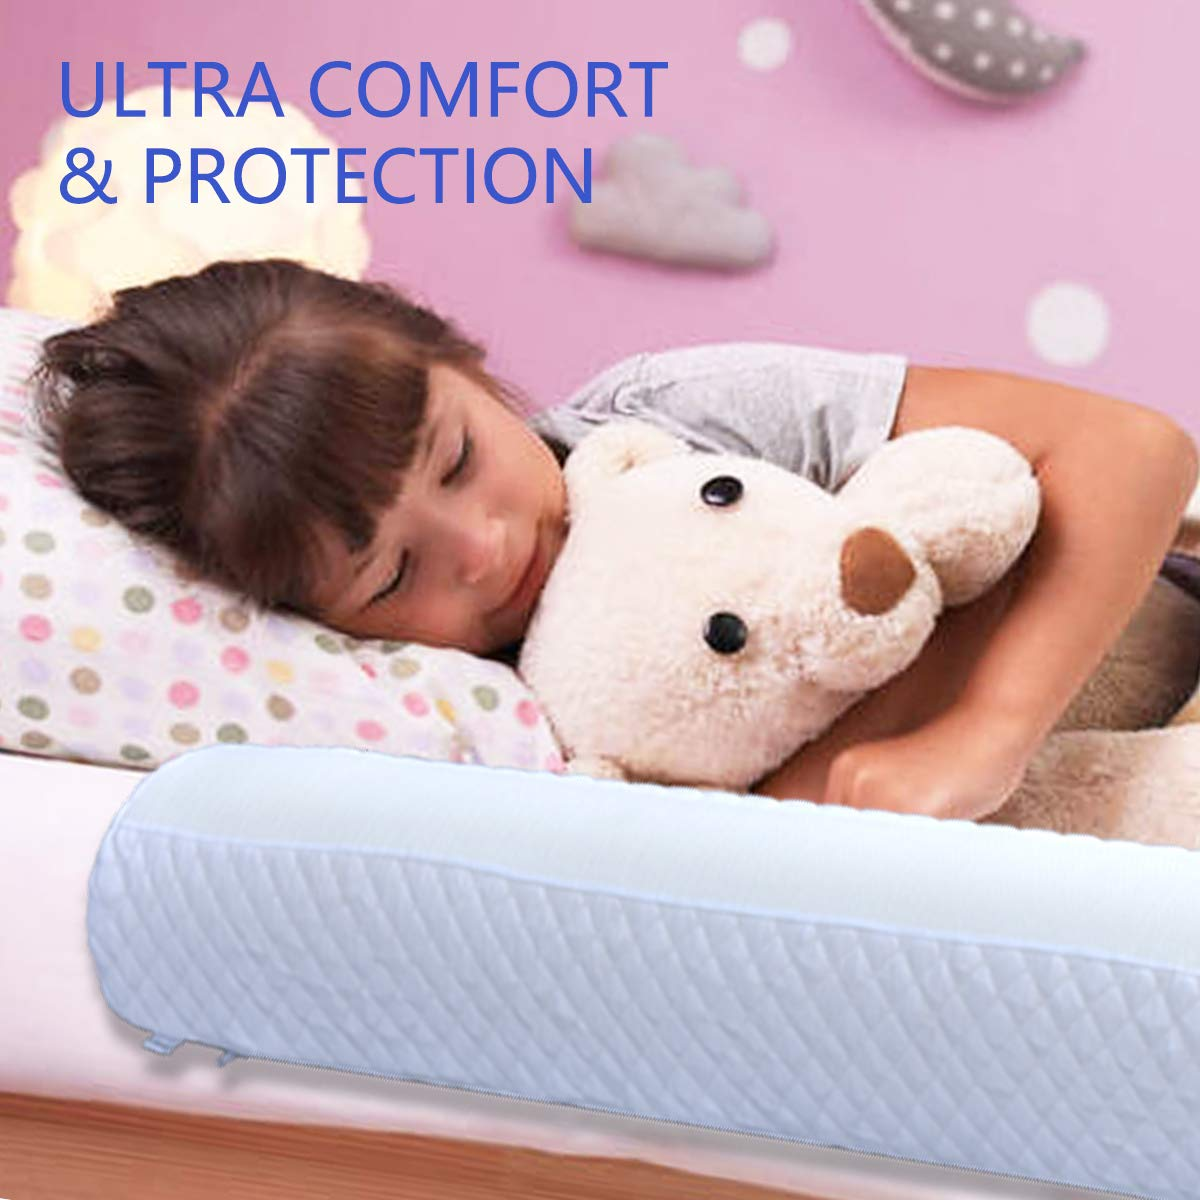 Bed Side Rail Safety Guard with Waterproof Cover Foam Bed Bumpers for Kids 2-Pack Toddler Bed Rail Bumper,